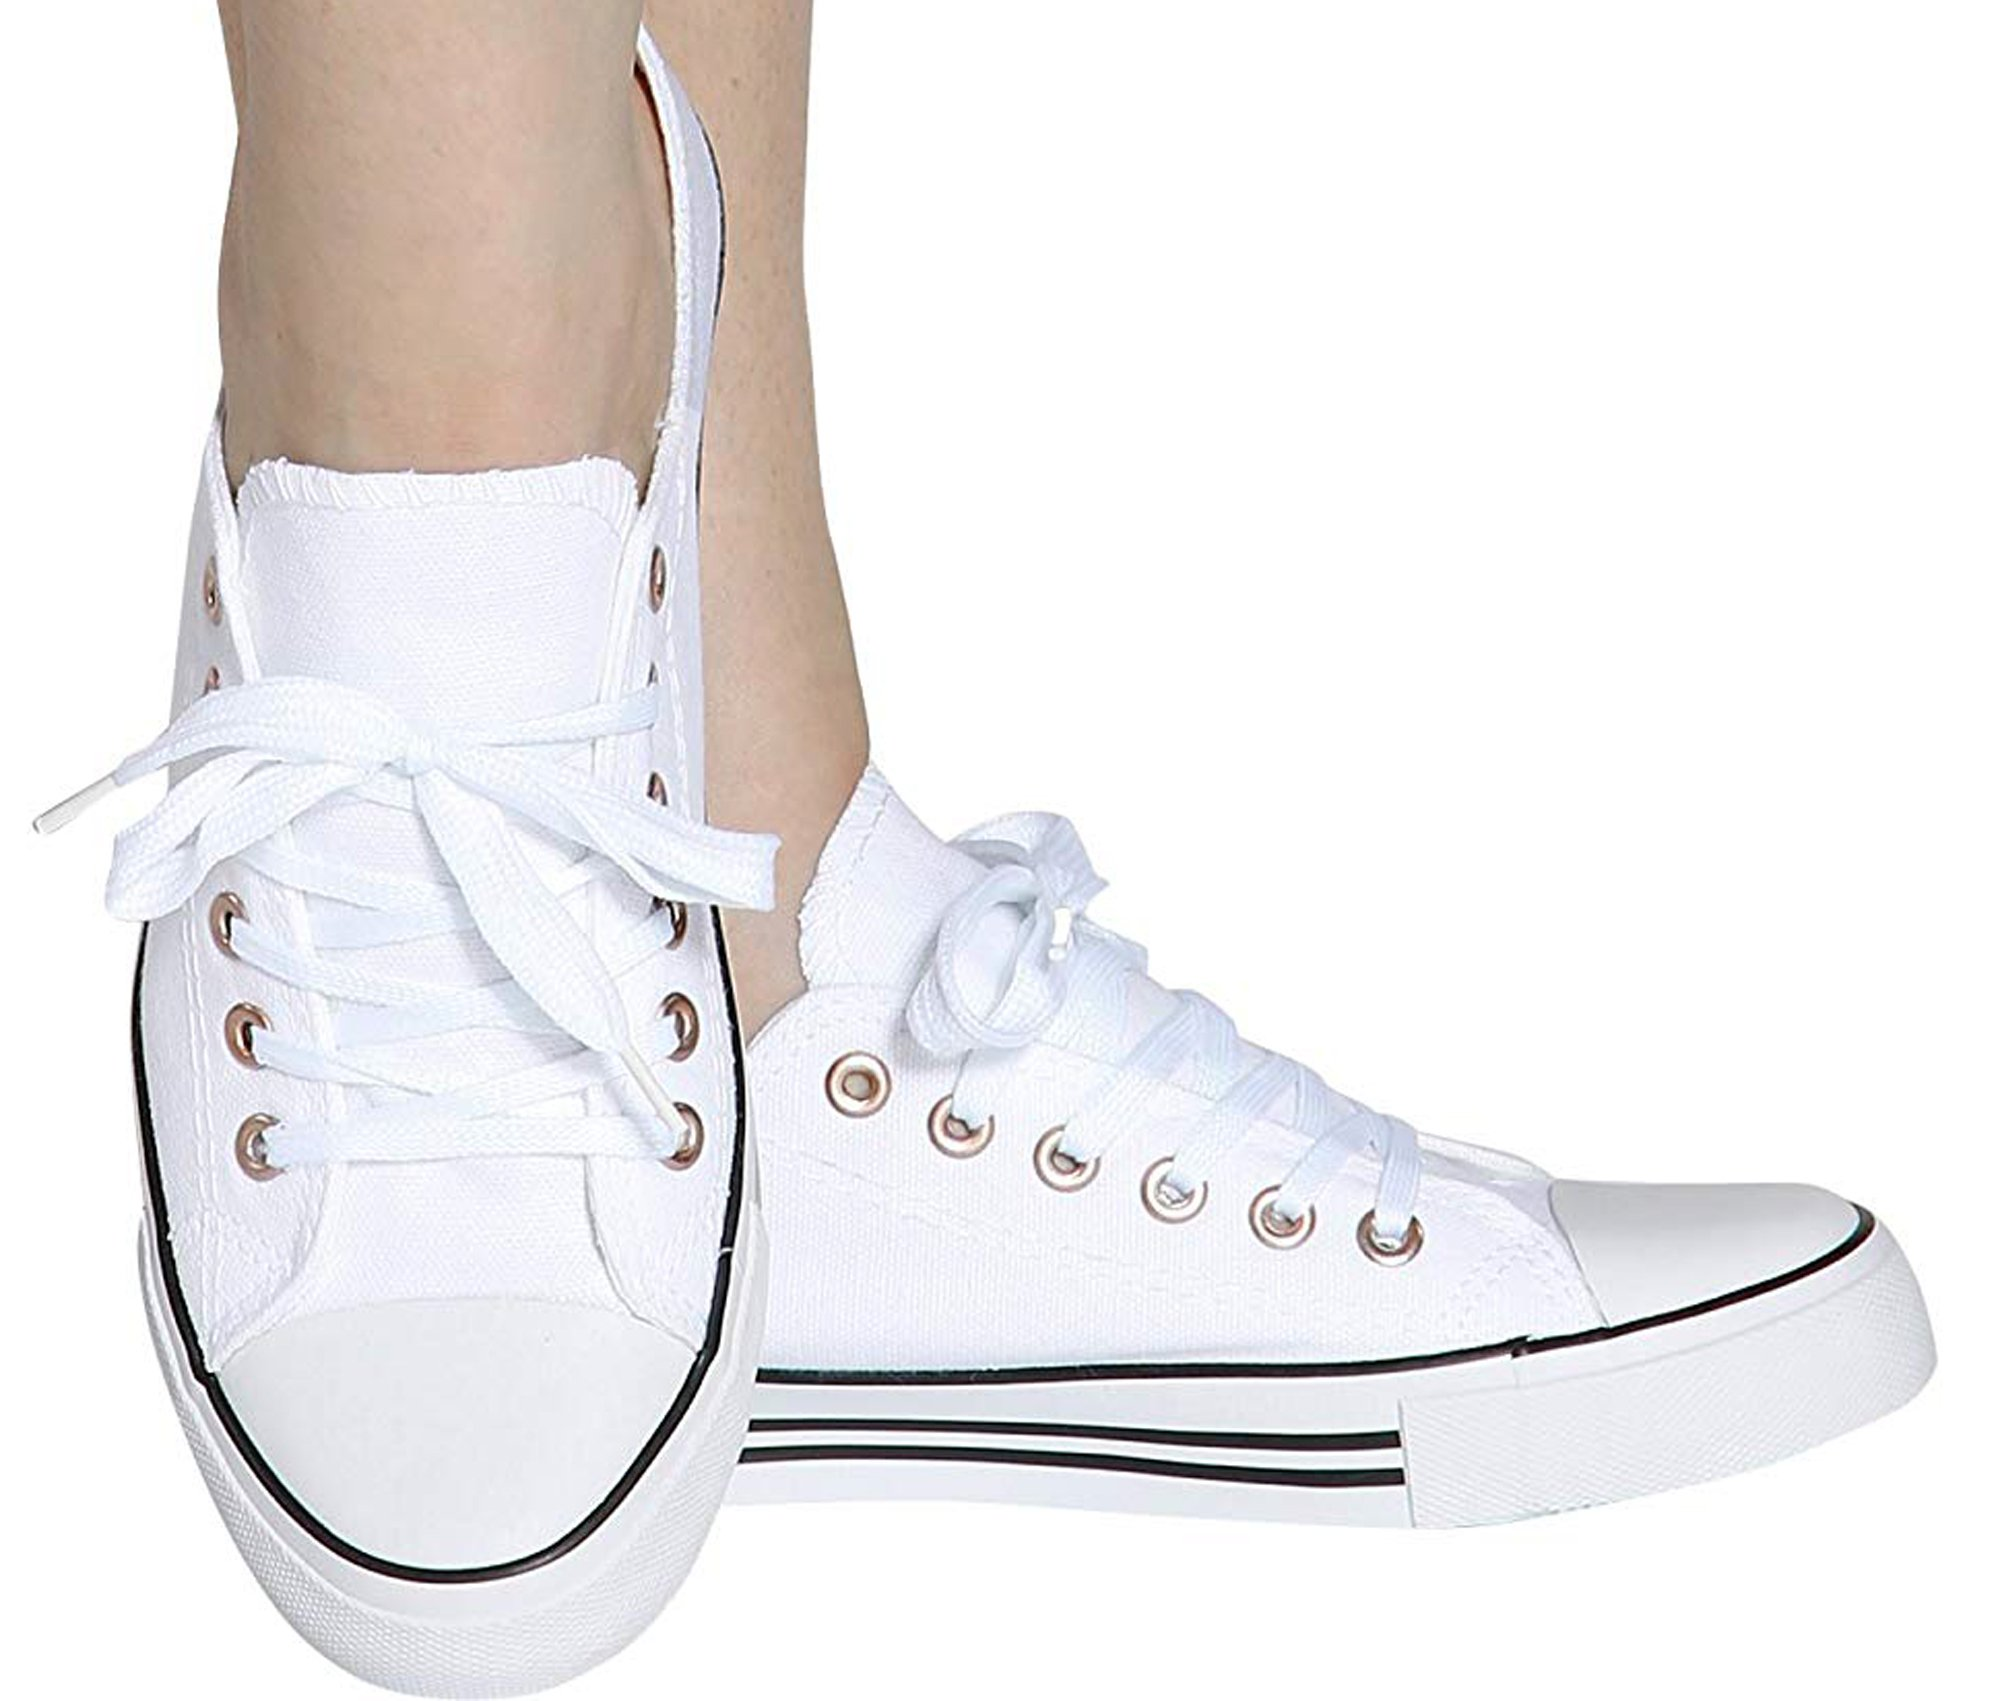 875229d562 Galleon - Shop Pretty Girl Women's Sneakers Casual Canvas Shoes Solid  Colors Low Top Lace Up Flat Fashion 2.0 (10, All White Canvas W/Black  Stripes)